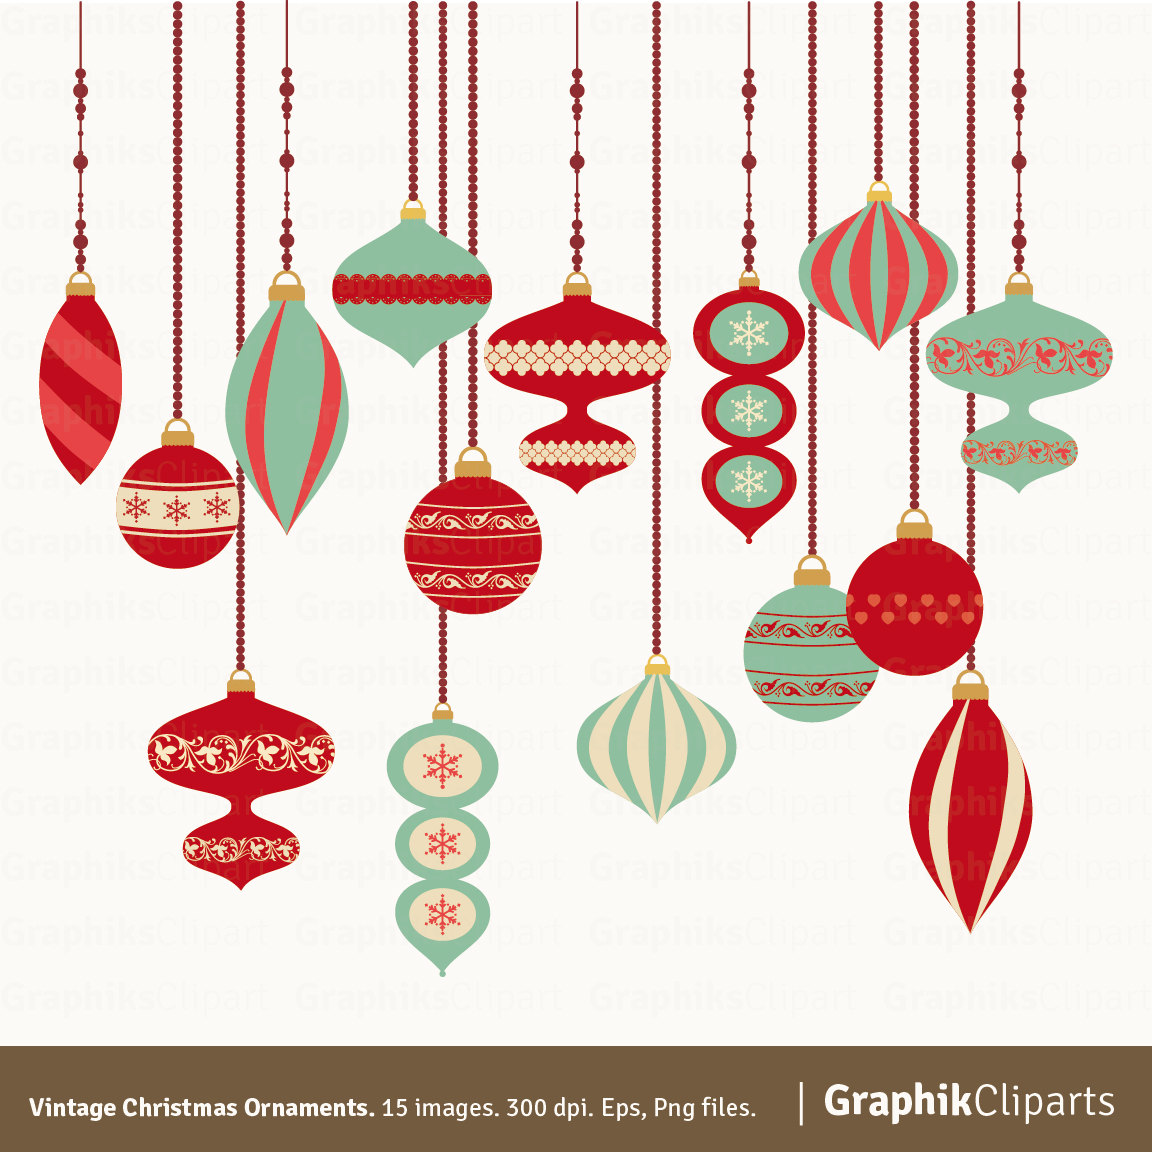 Christmas ornaments clipart printables free png freeuse library Hanging ornaments clipart printable green - ClipartFest png freeuse library